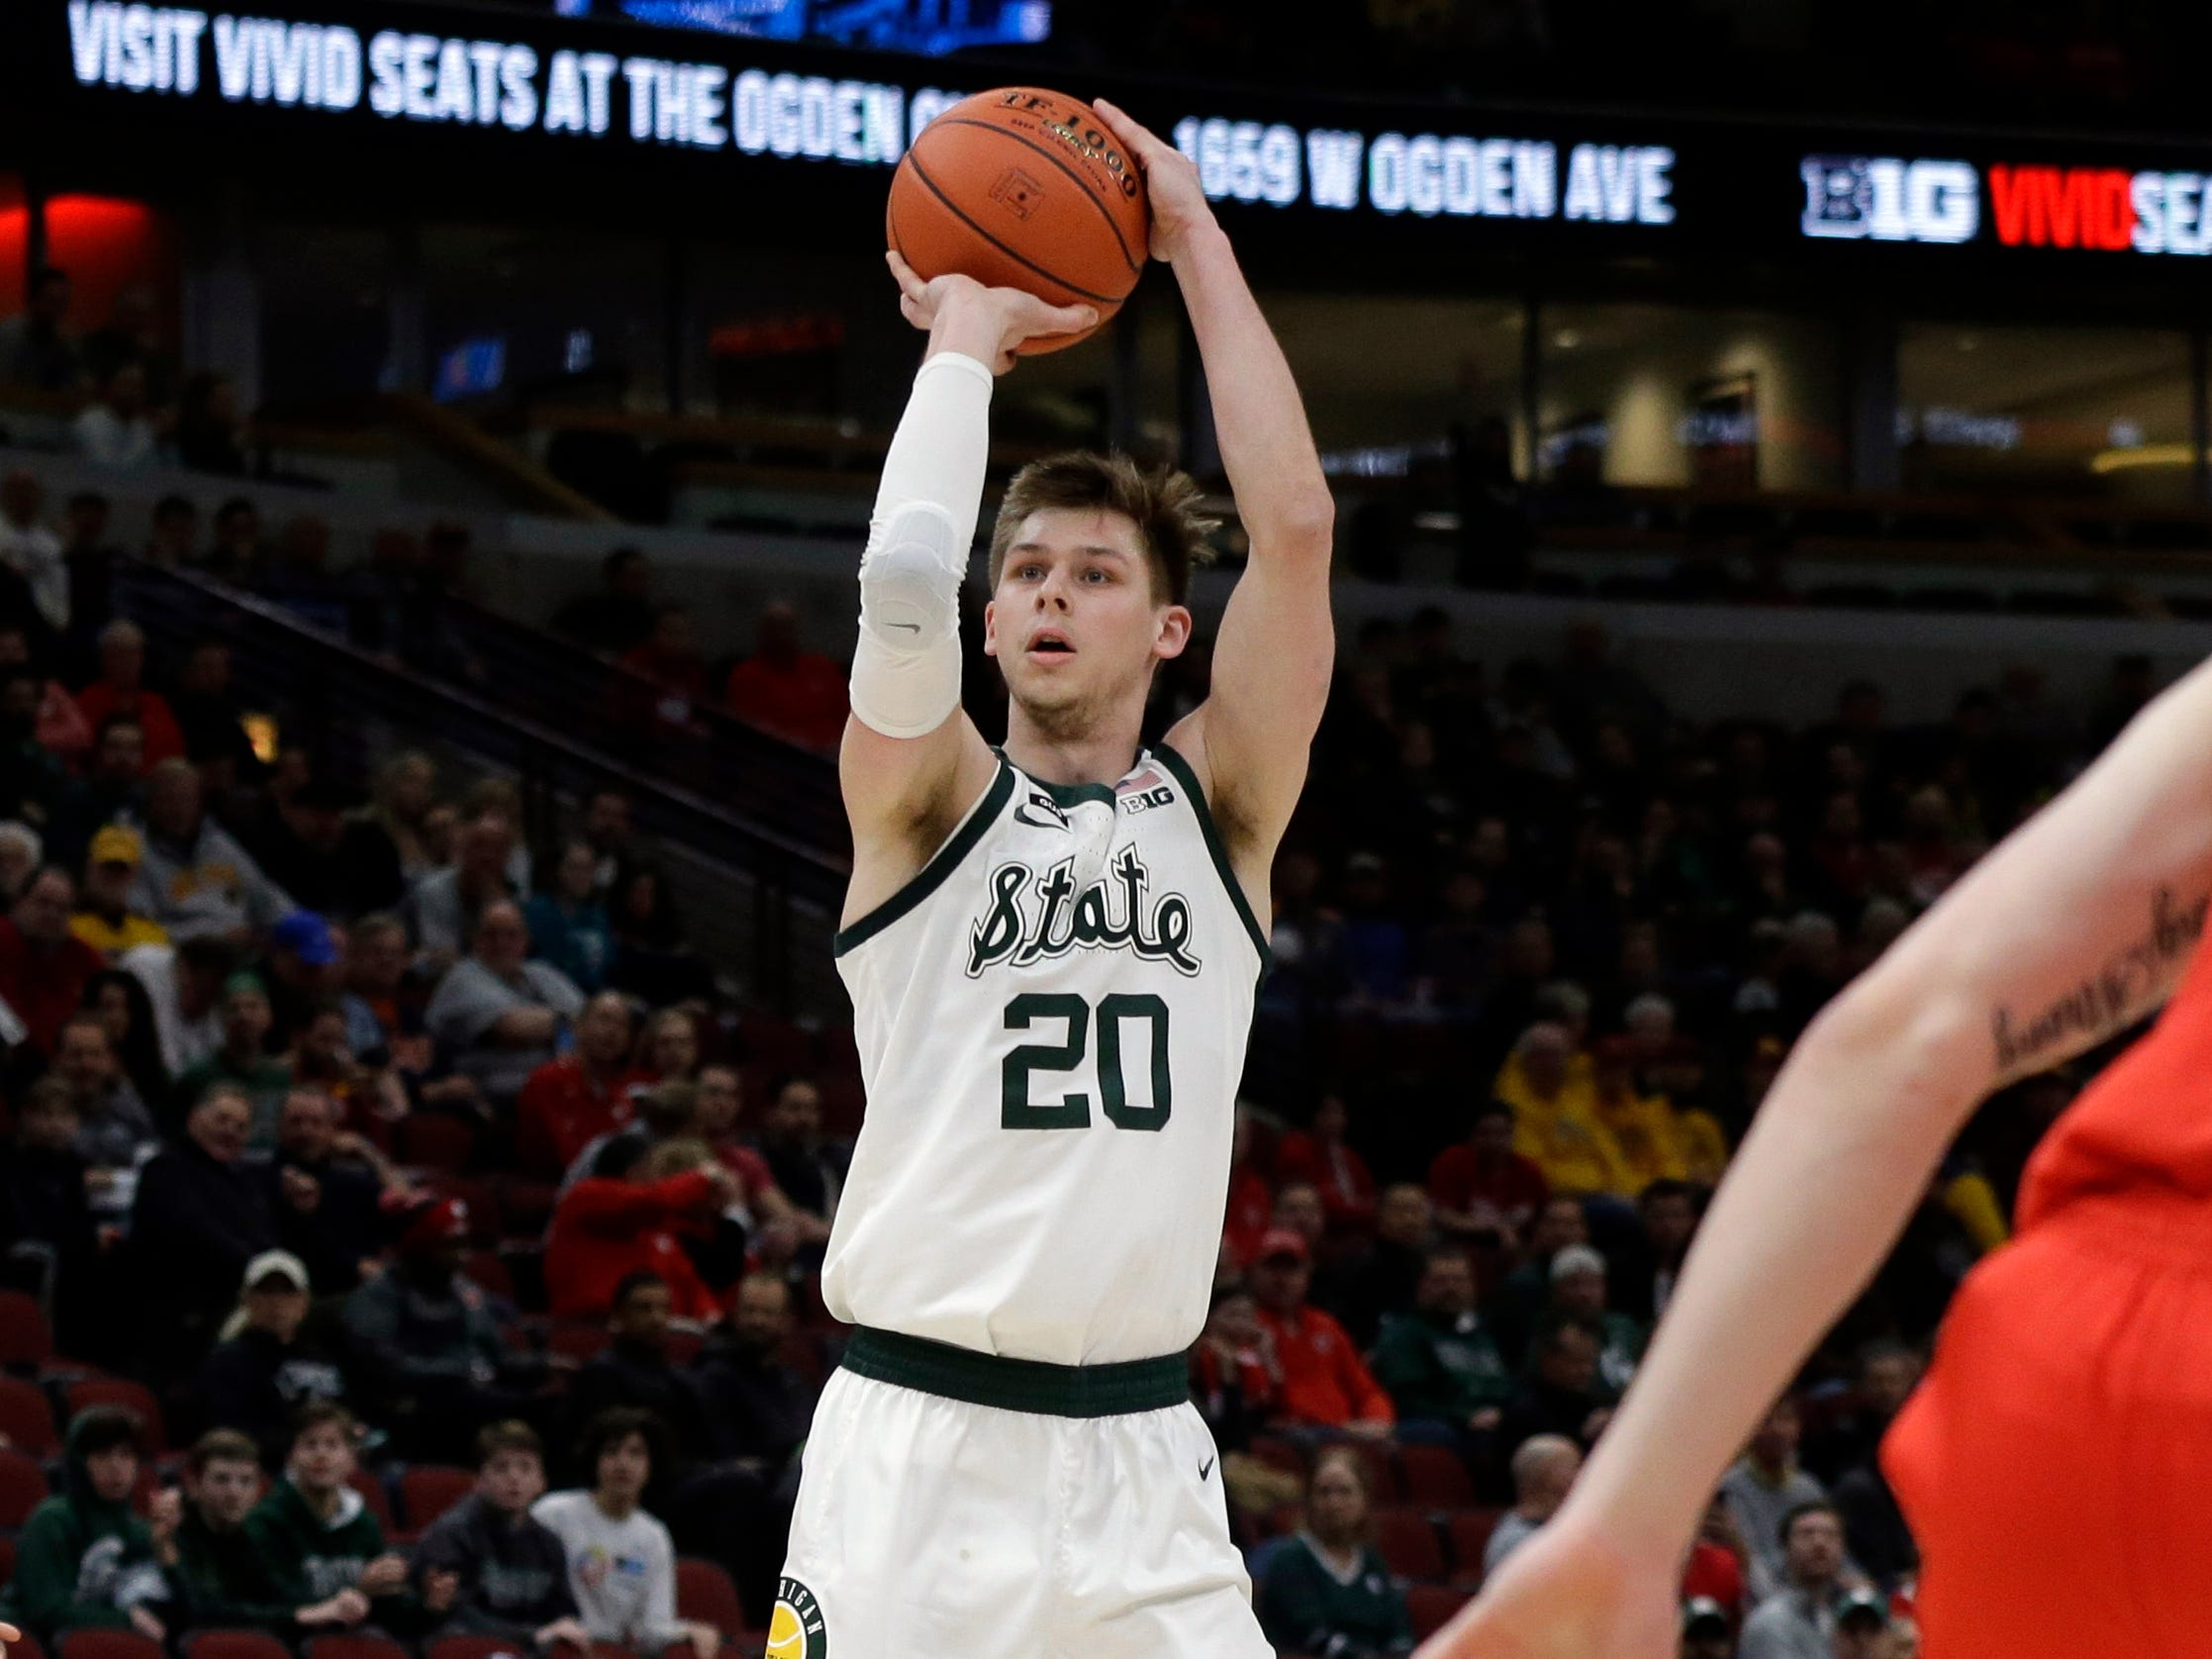 Michigan State's Matt McQuaid (20) shoots during the first half.